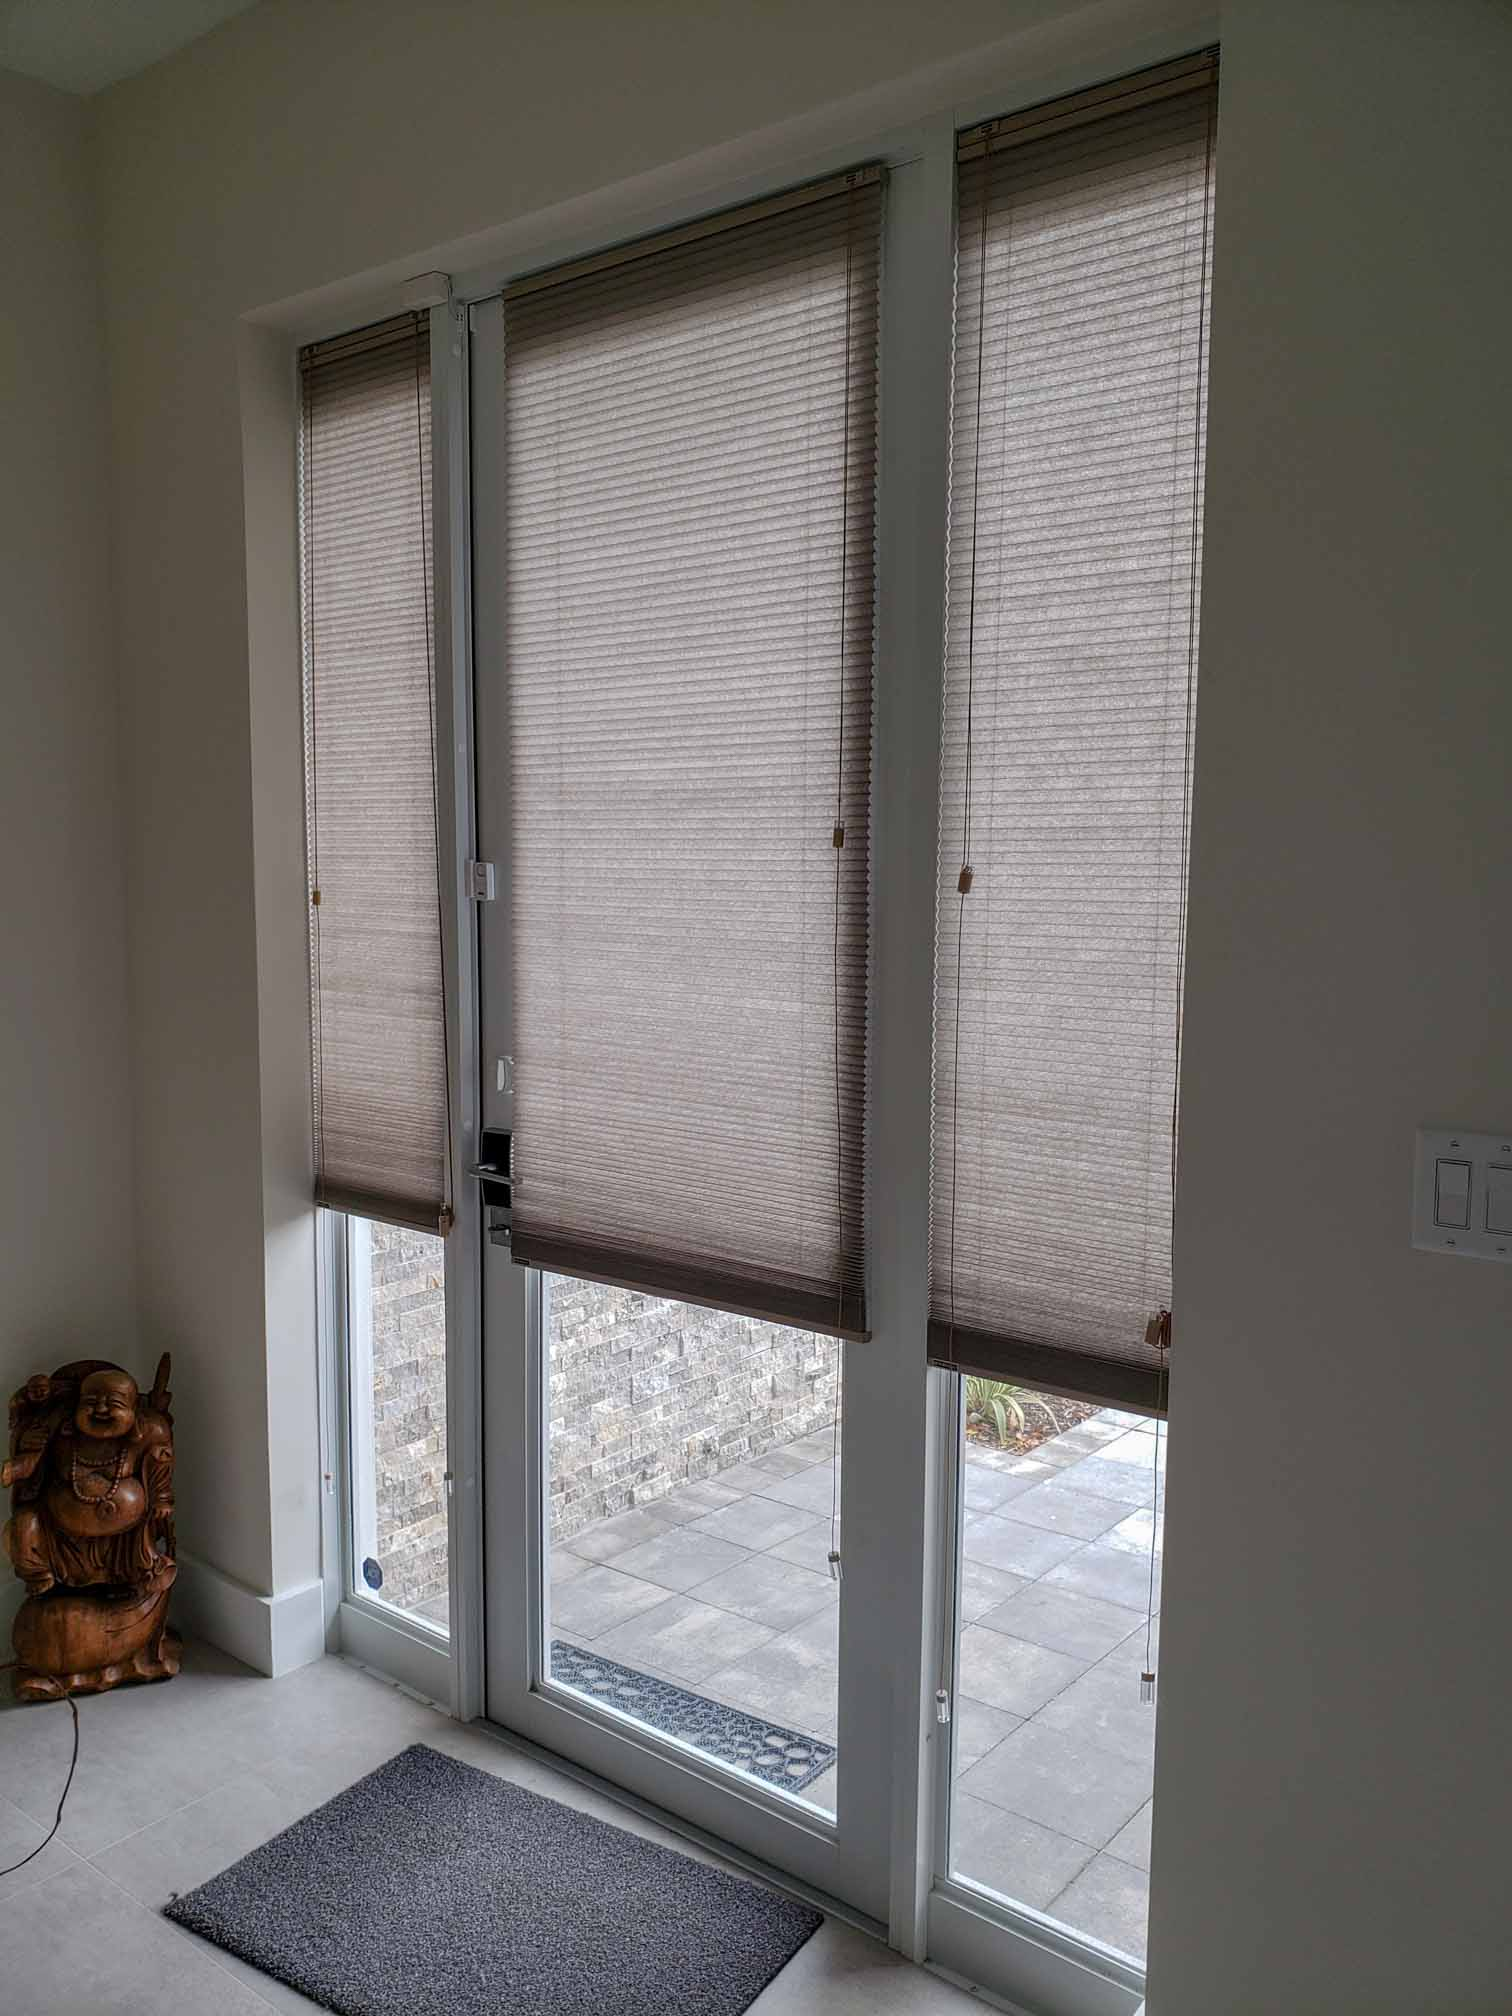 honeycomb shades gallery HONEYCOMB SHADES GALLERY 20180503 154353